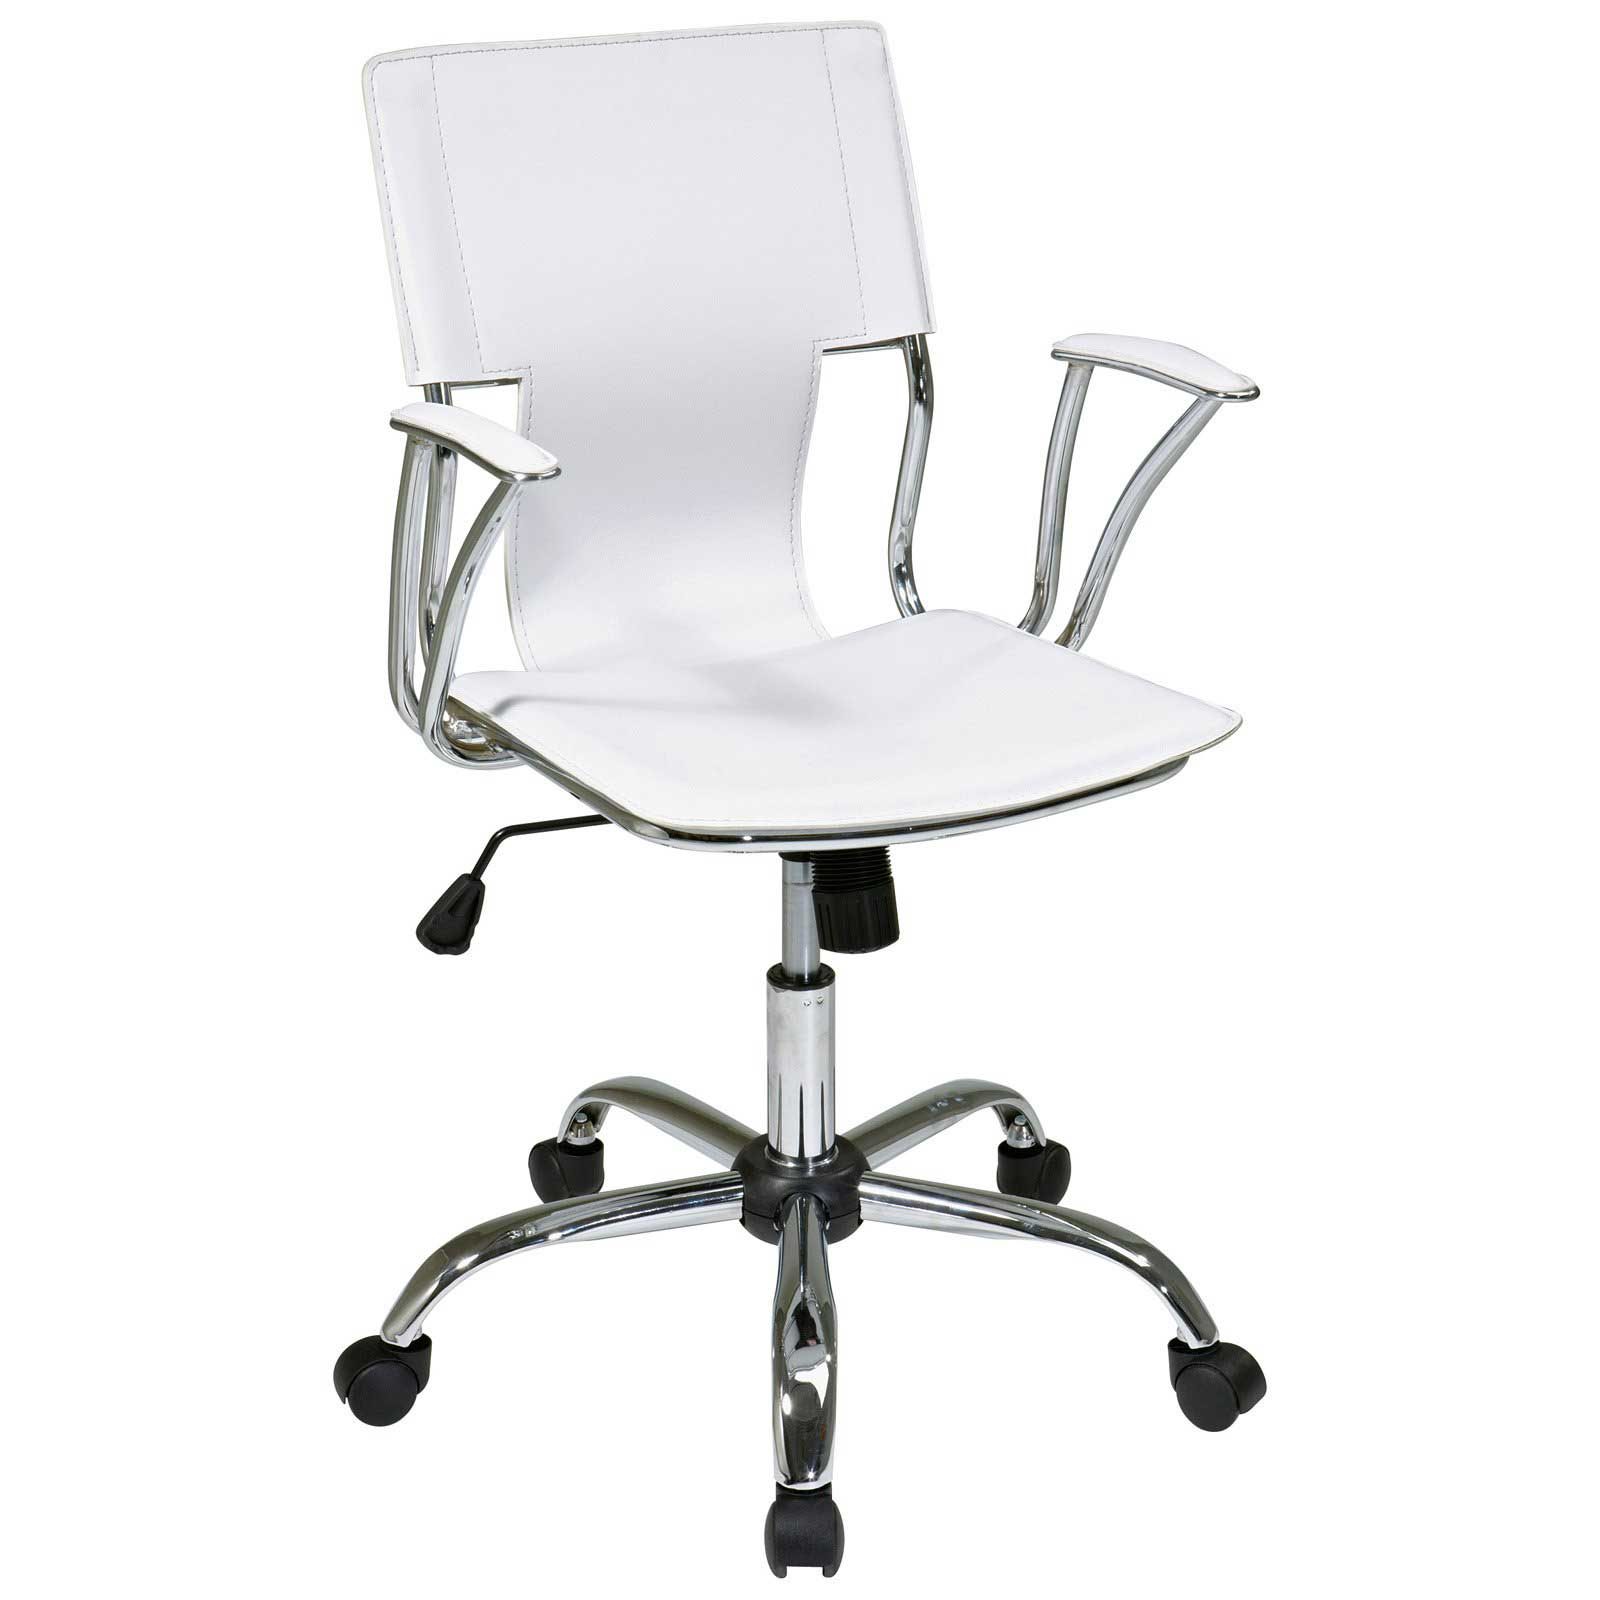 Avenue Six White Quality Office Chairs from Office Star